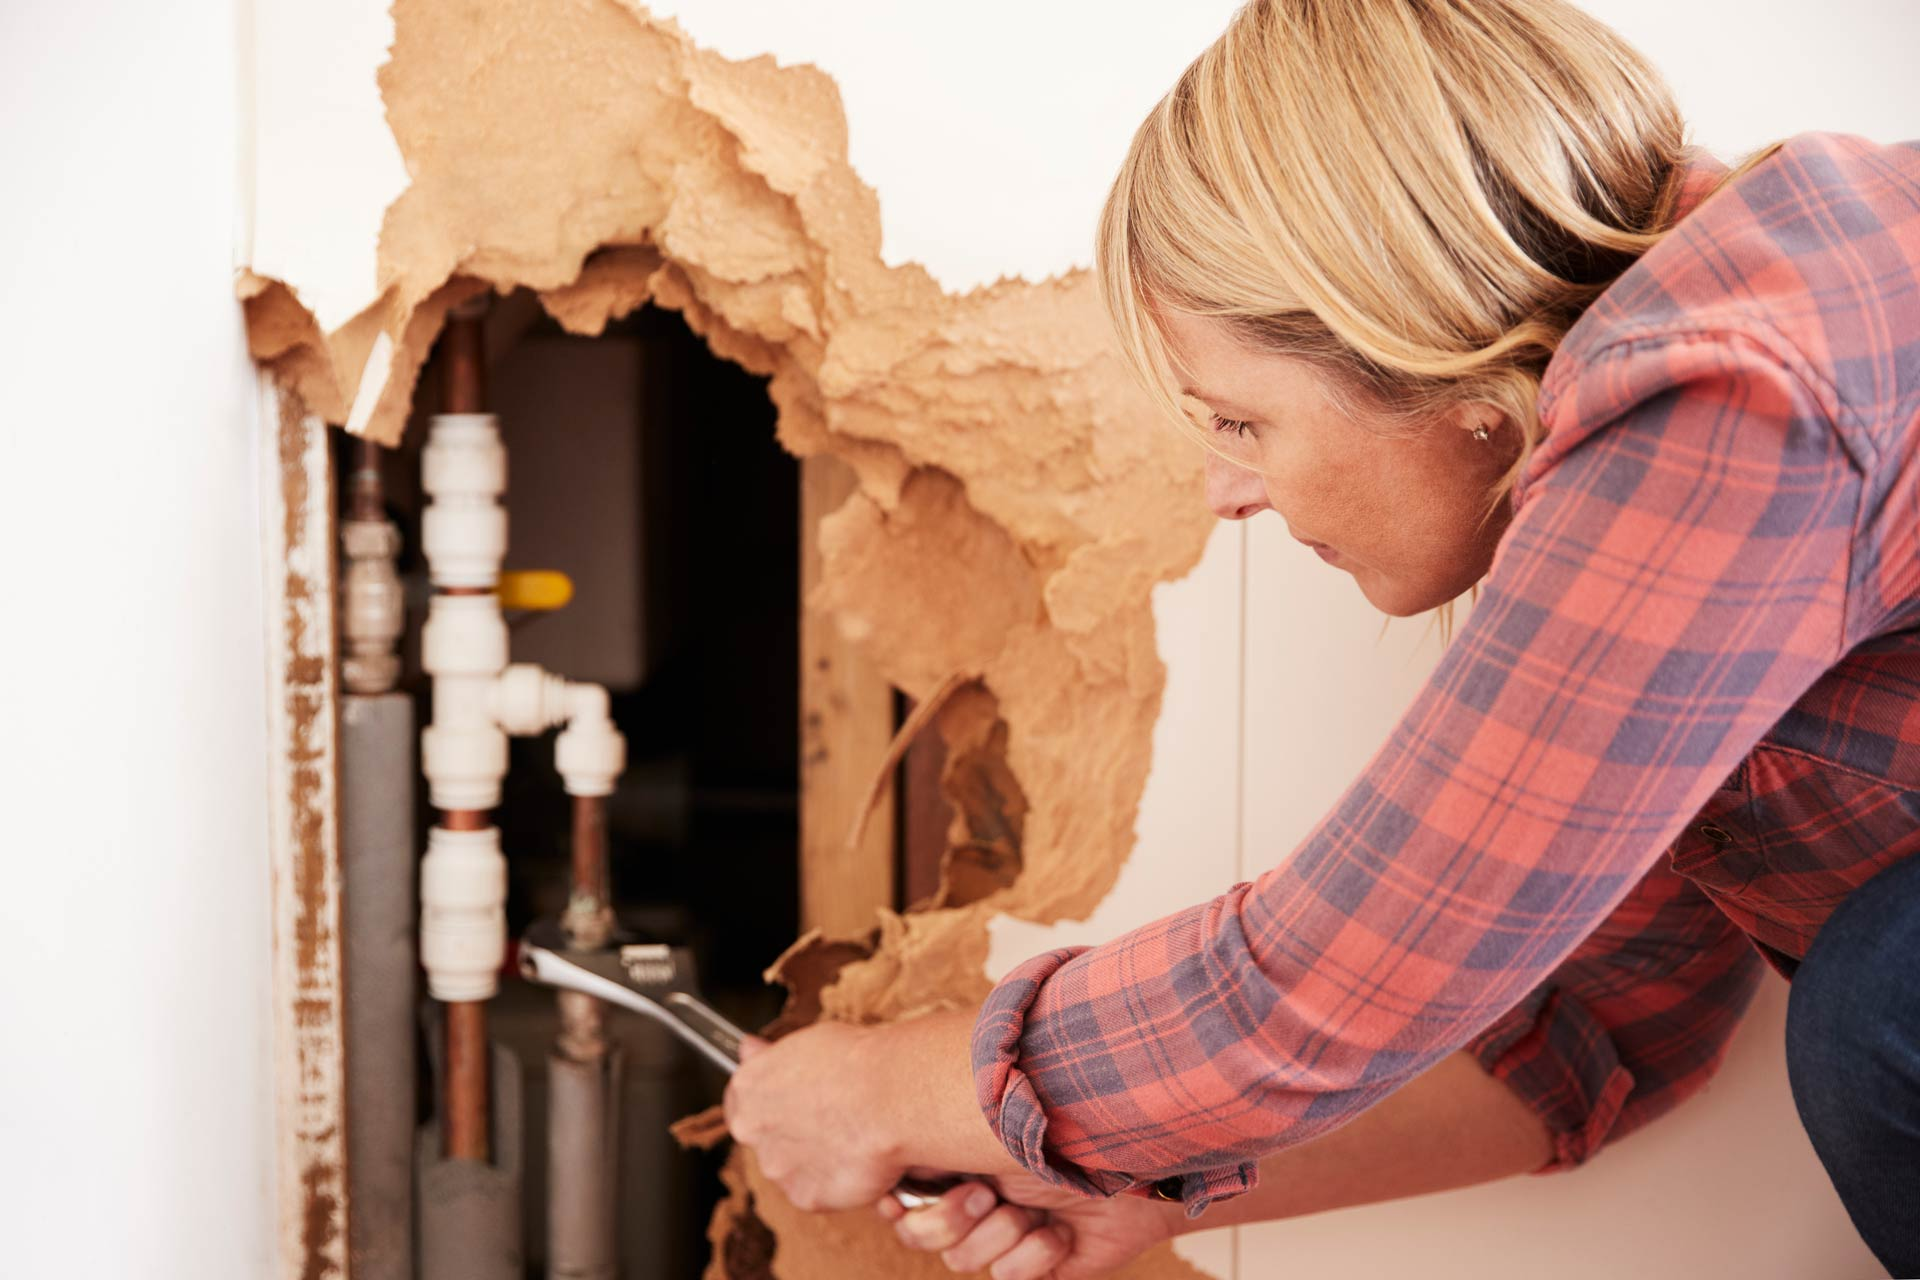 What Is The Best Way To Keep A Basement Dry?